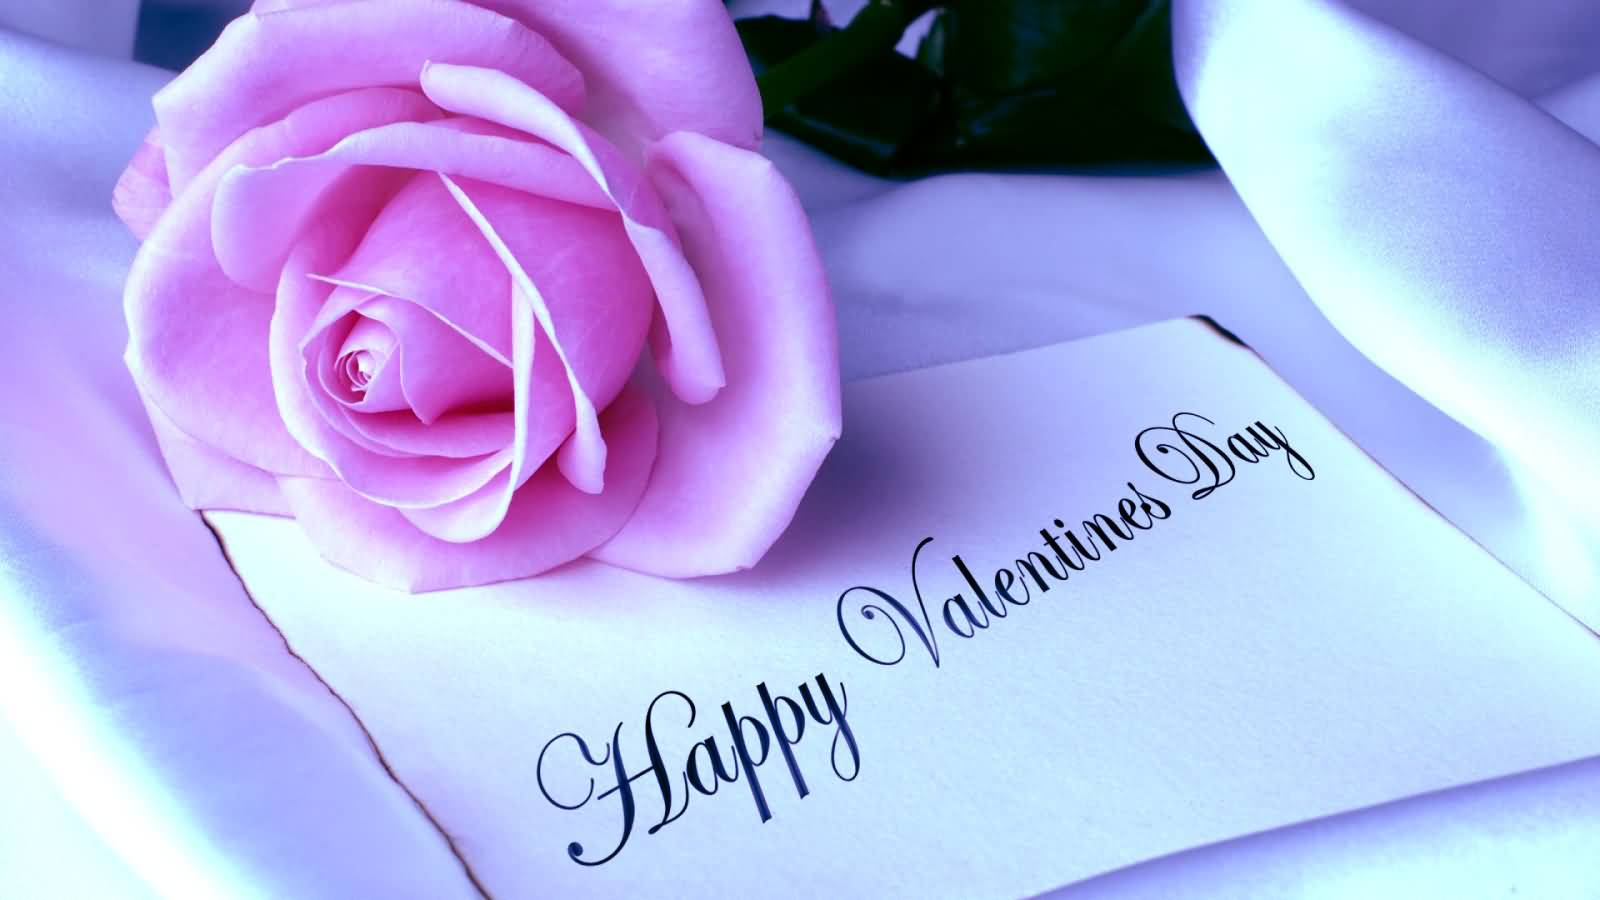 55 Most Beautiful Valentine Day Wallpapers